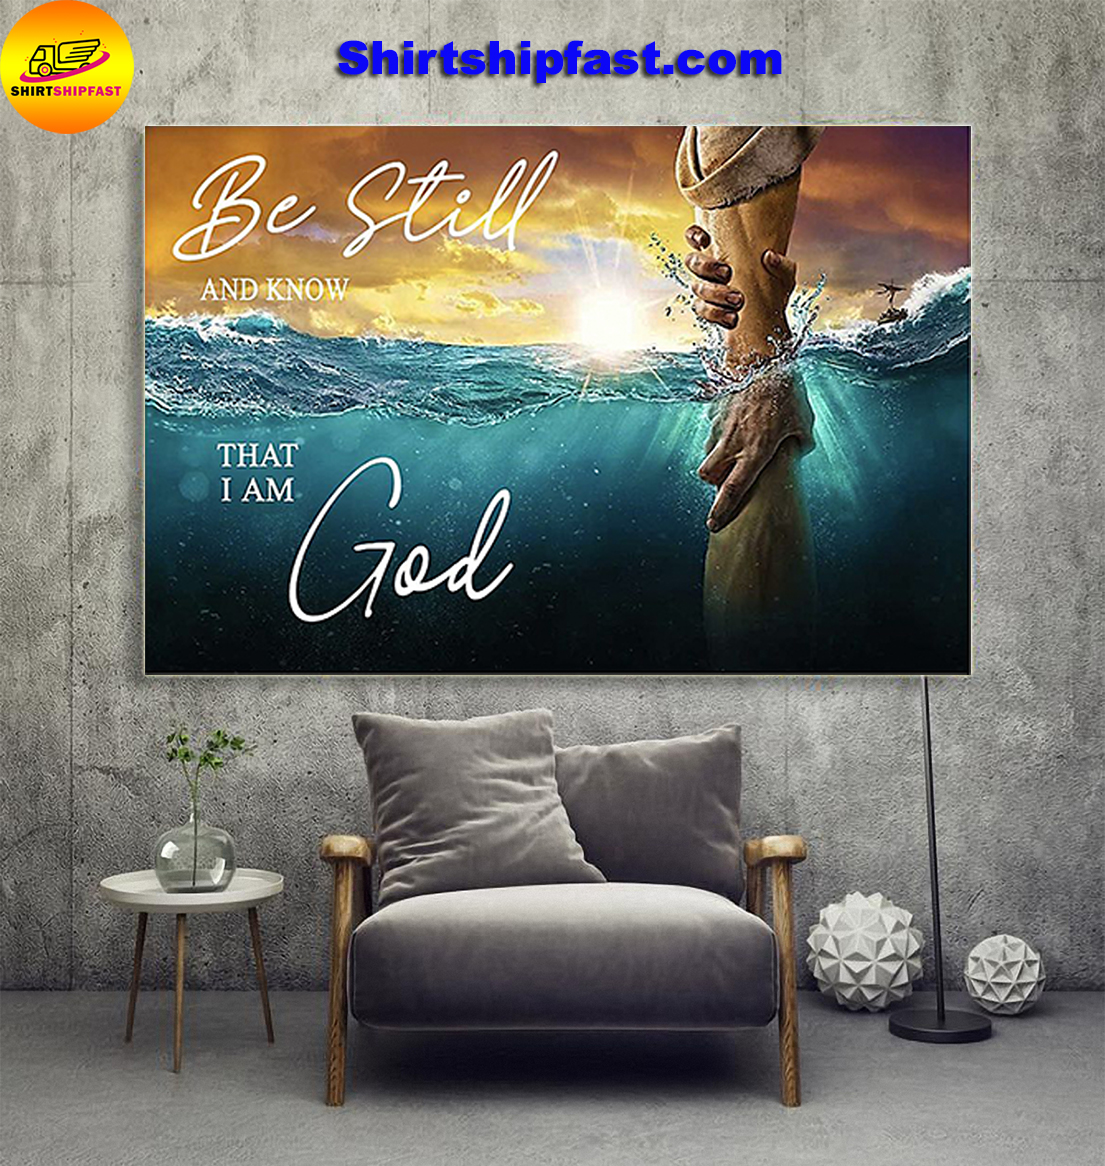 Be still and know that I am God poster - Picture 1